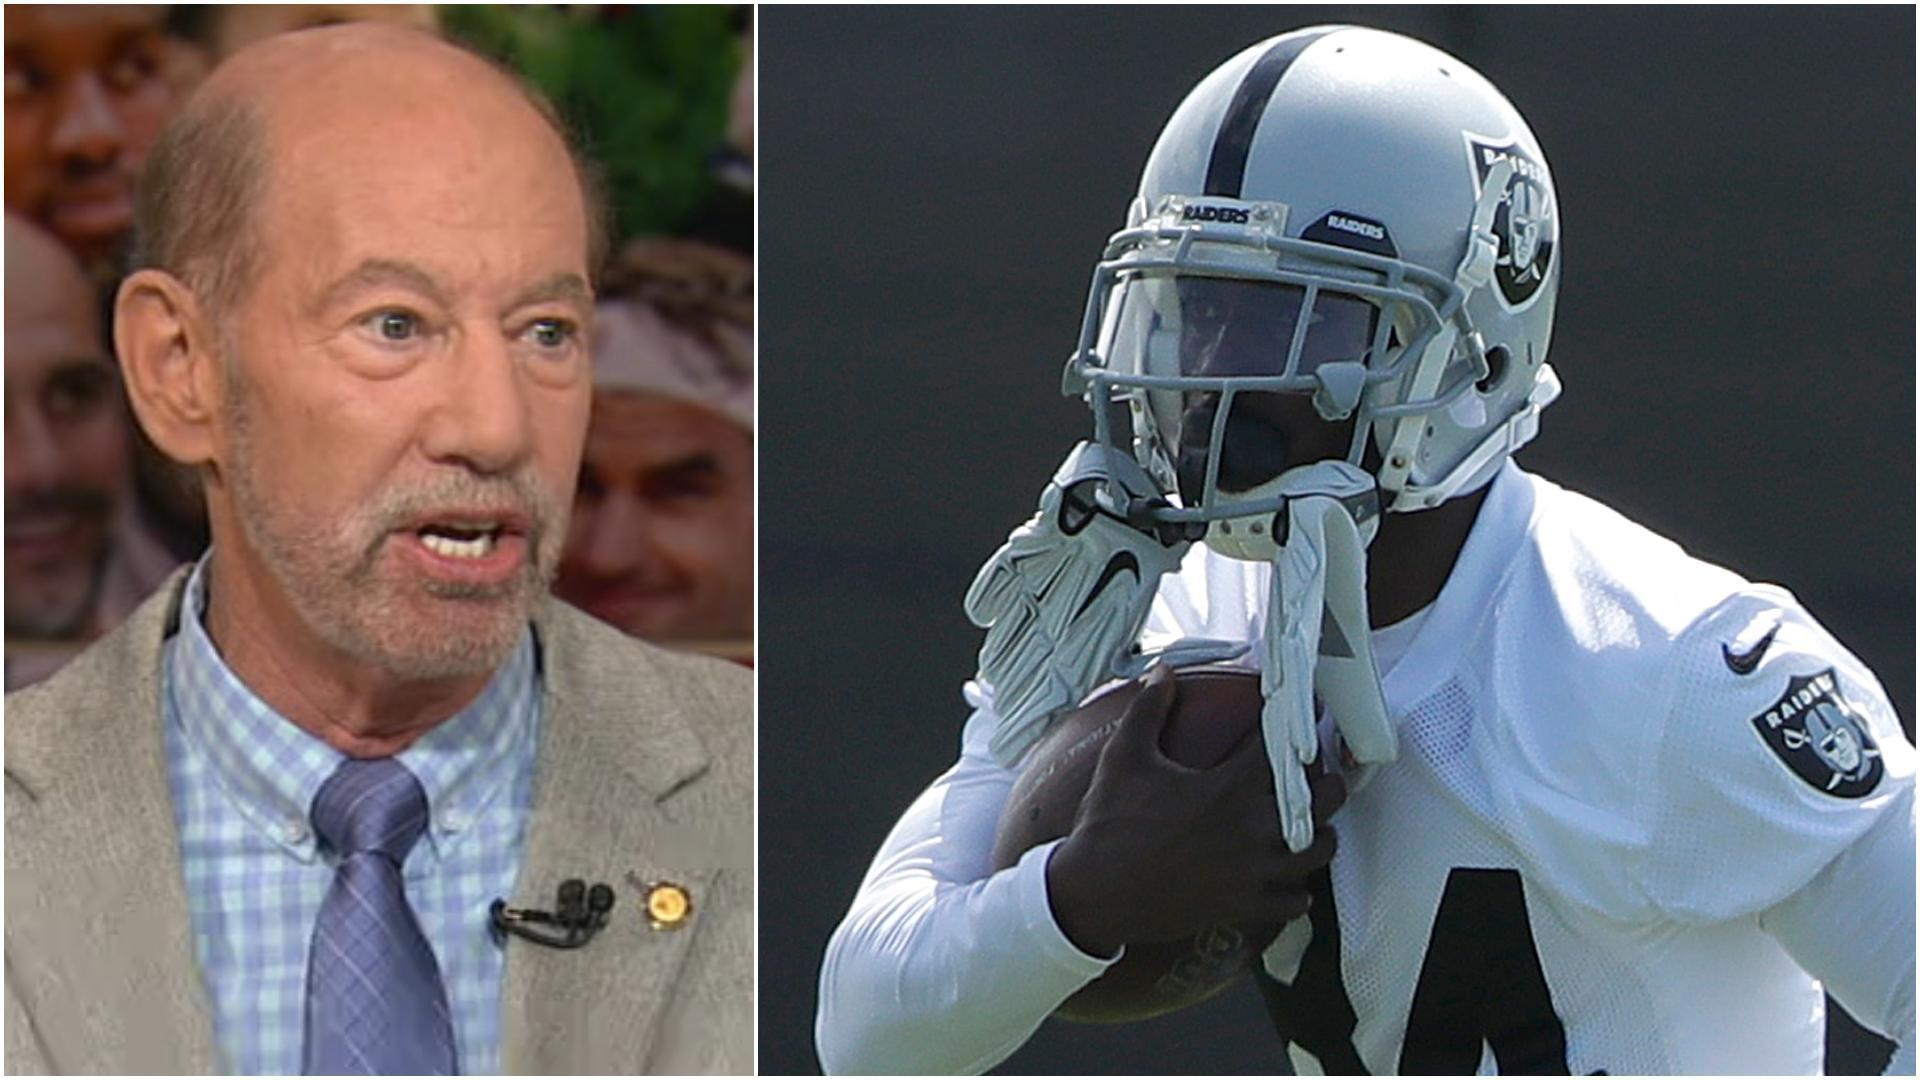 Kornheiser on AB's helmet situation: 'This can't be good'